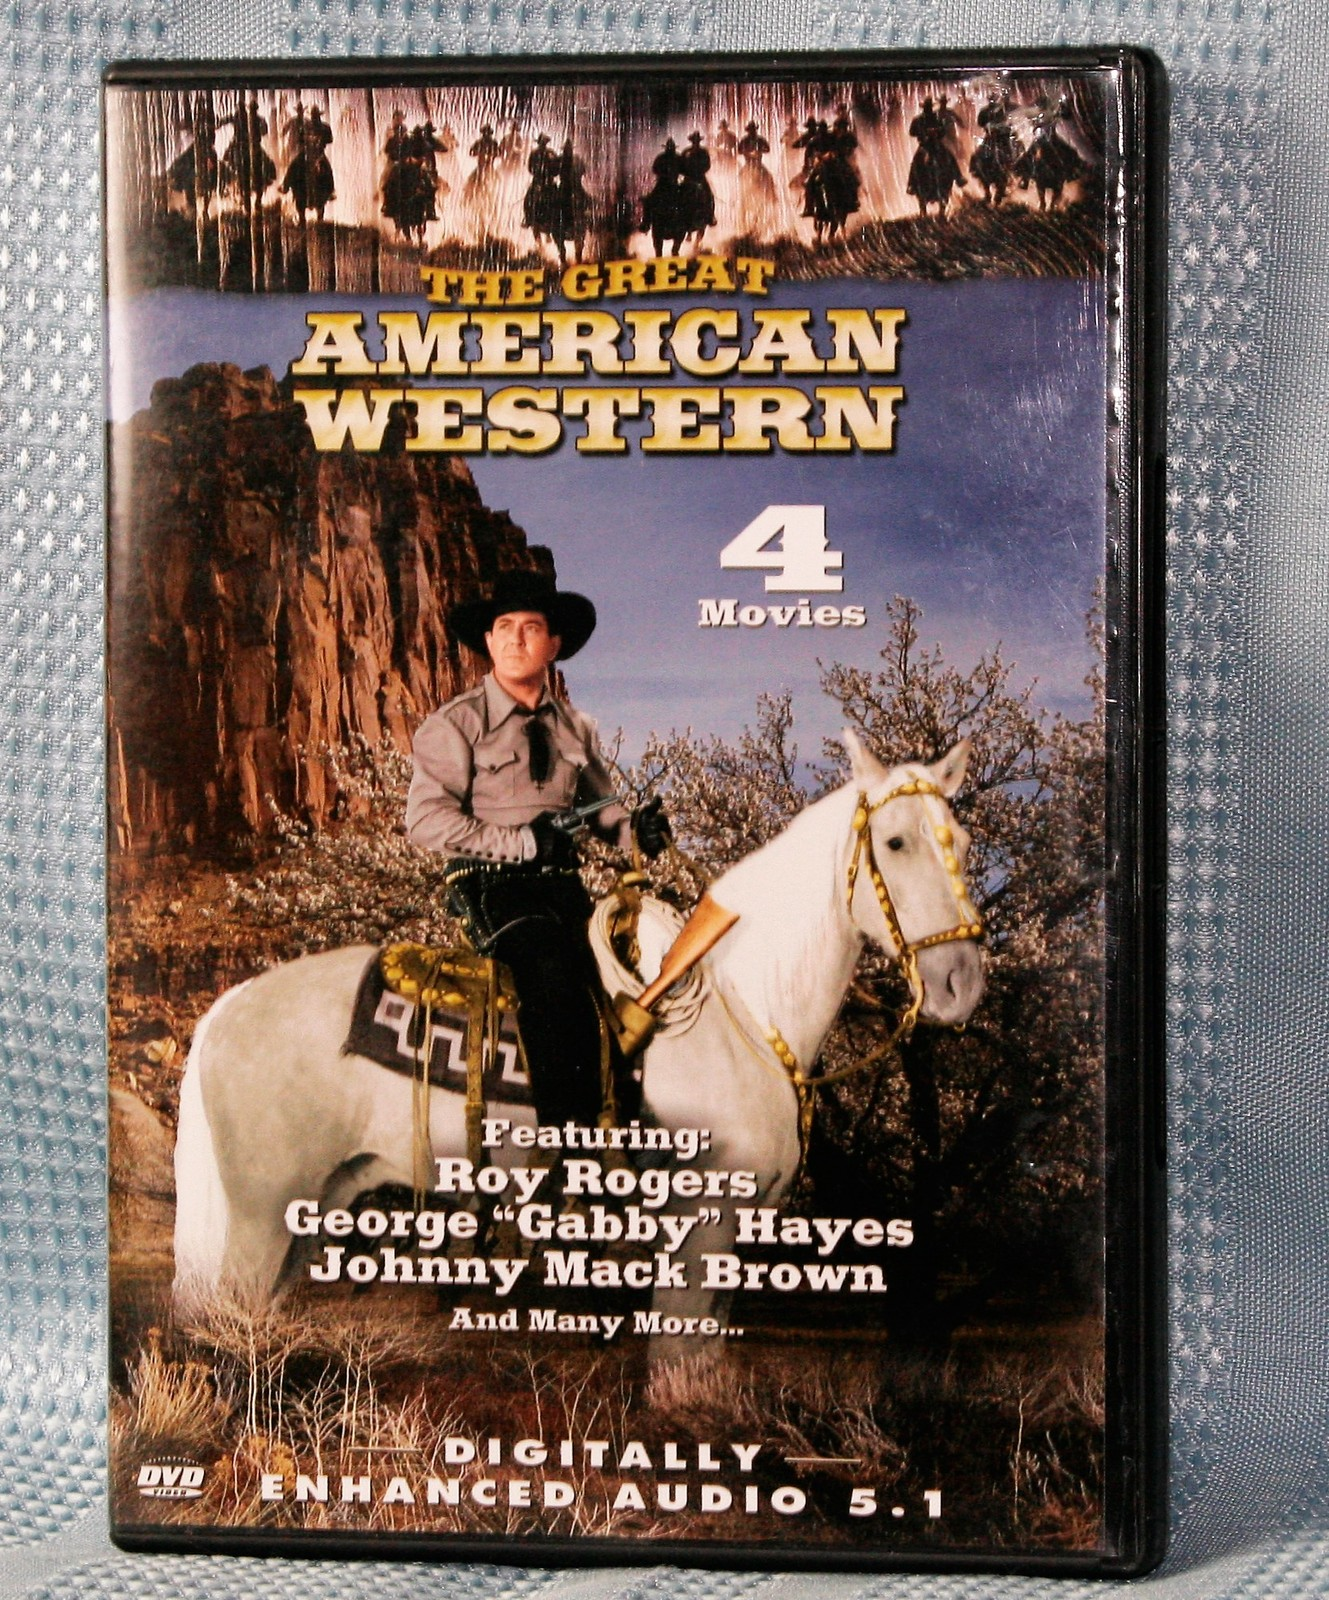 The Great American Western - Vol. 32 - 4 Movies DVD